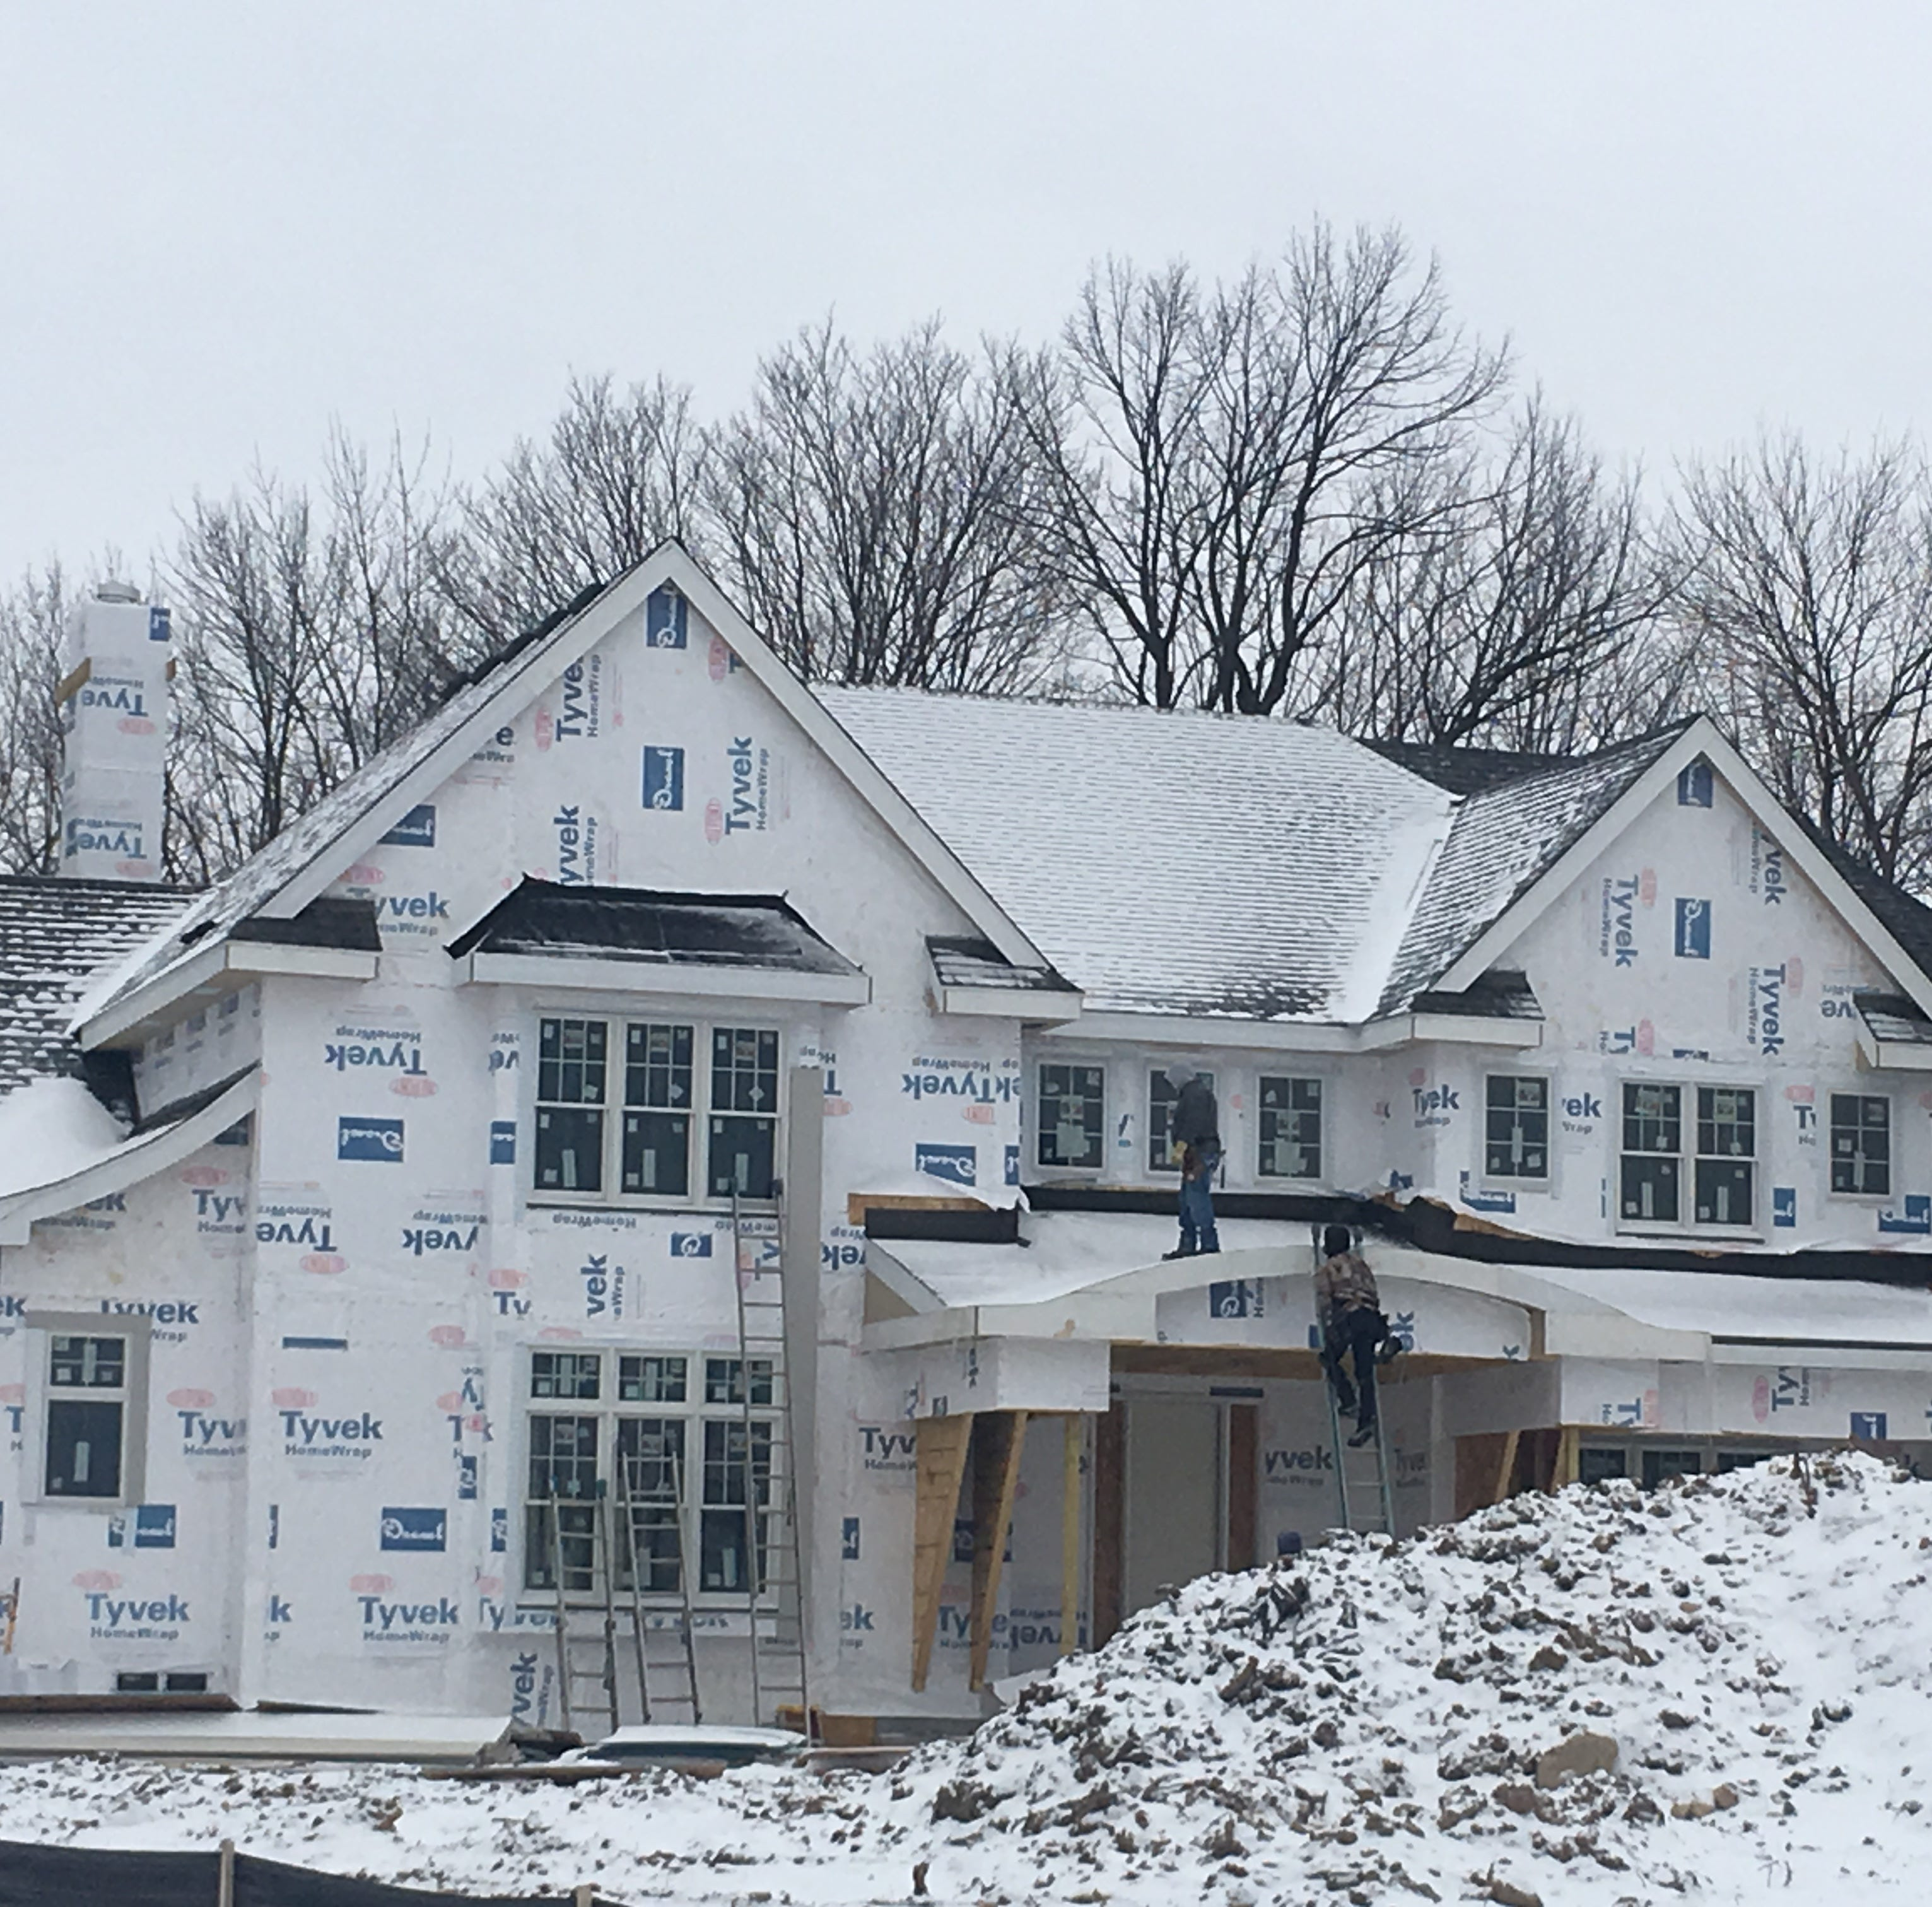 The new homes being built in metro Milwaukee so far this year will be bigger -- and pricier